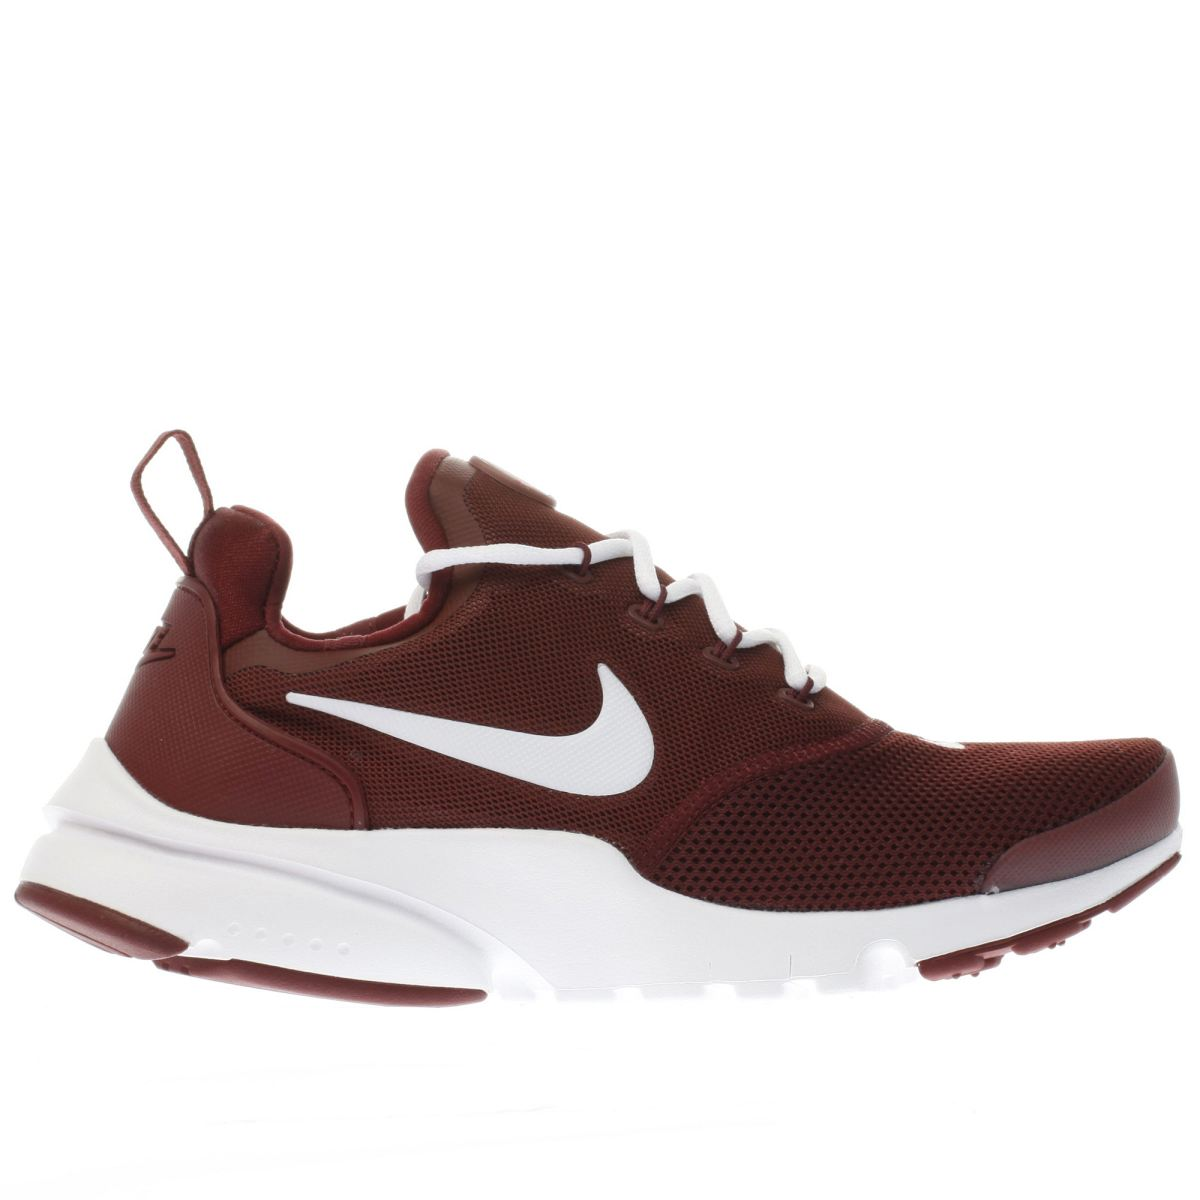 nike burgundy presto fly Boys Youth Trainers